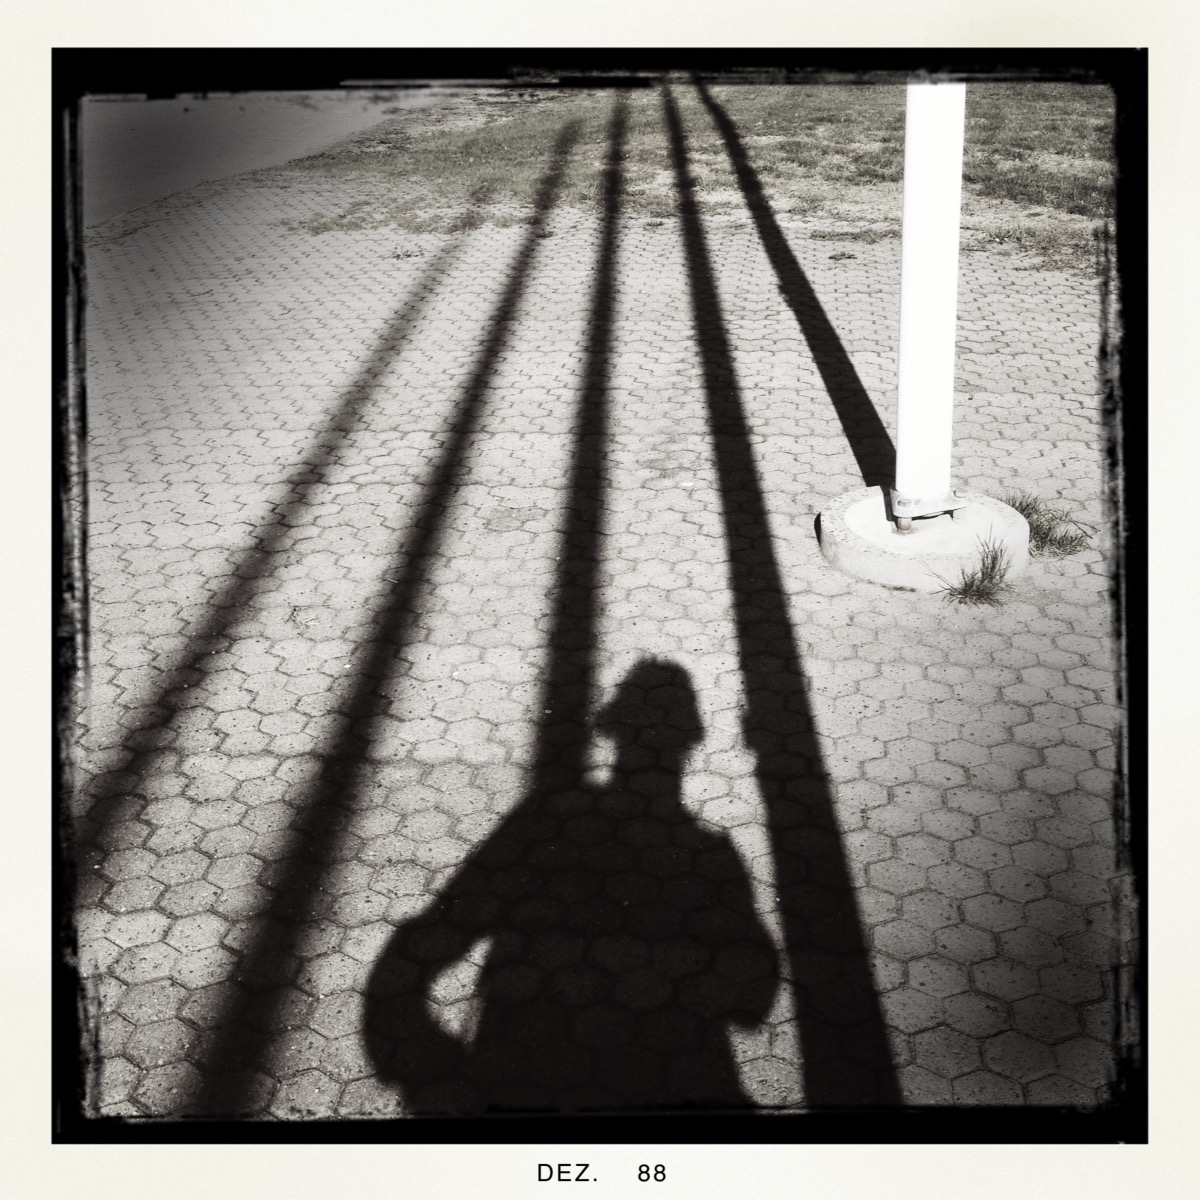 Shadow of a person behind vertical lines